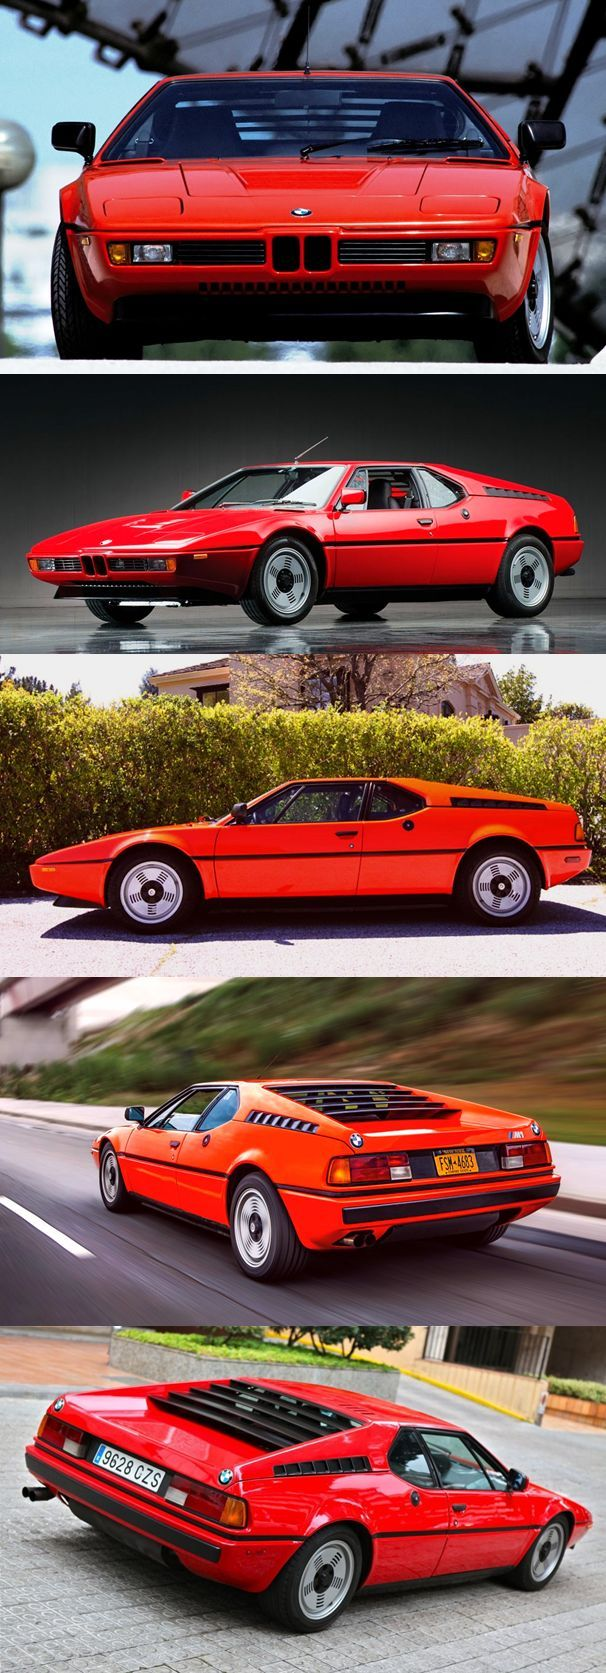 Best 25 bmw m1 ideas on pinterest bmw e9 bmw 3 e46 and bmw vintage bmw m11978 zweitriges coup 1978 bis 1981 insgesamt 460 mal bmw m1bmw carscar sciox Image collections